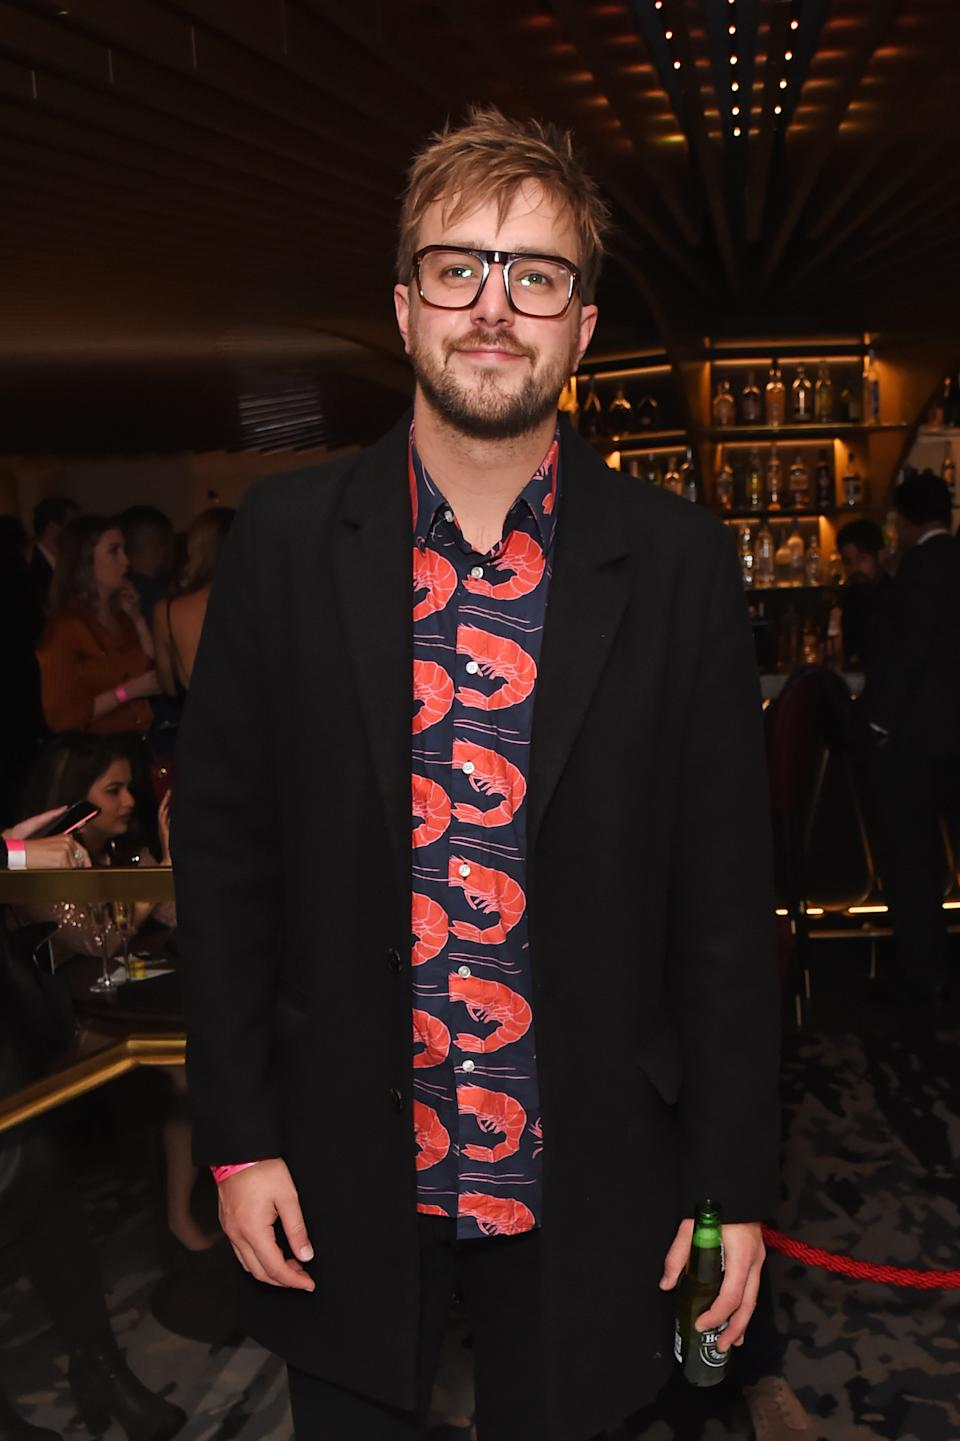 Iain Stirling attends the 20th anniversary celebration of tailor and fashion designer Gresham Blake at the Hard Rock Hotel London on November 28, 2019 in London, England.  (Photo by David M. Benett/Dave Benett/Getty Images for Hard Rock Hotel London)